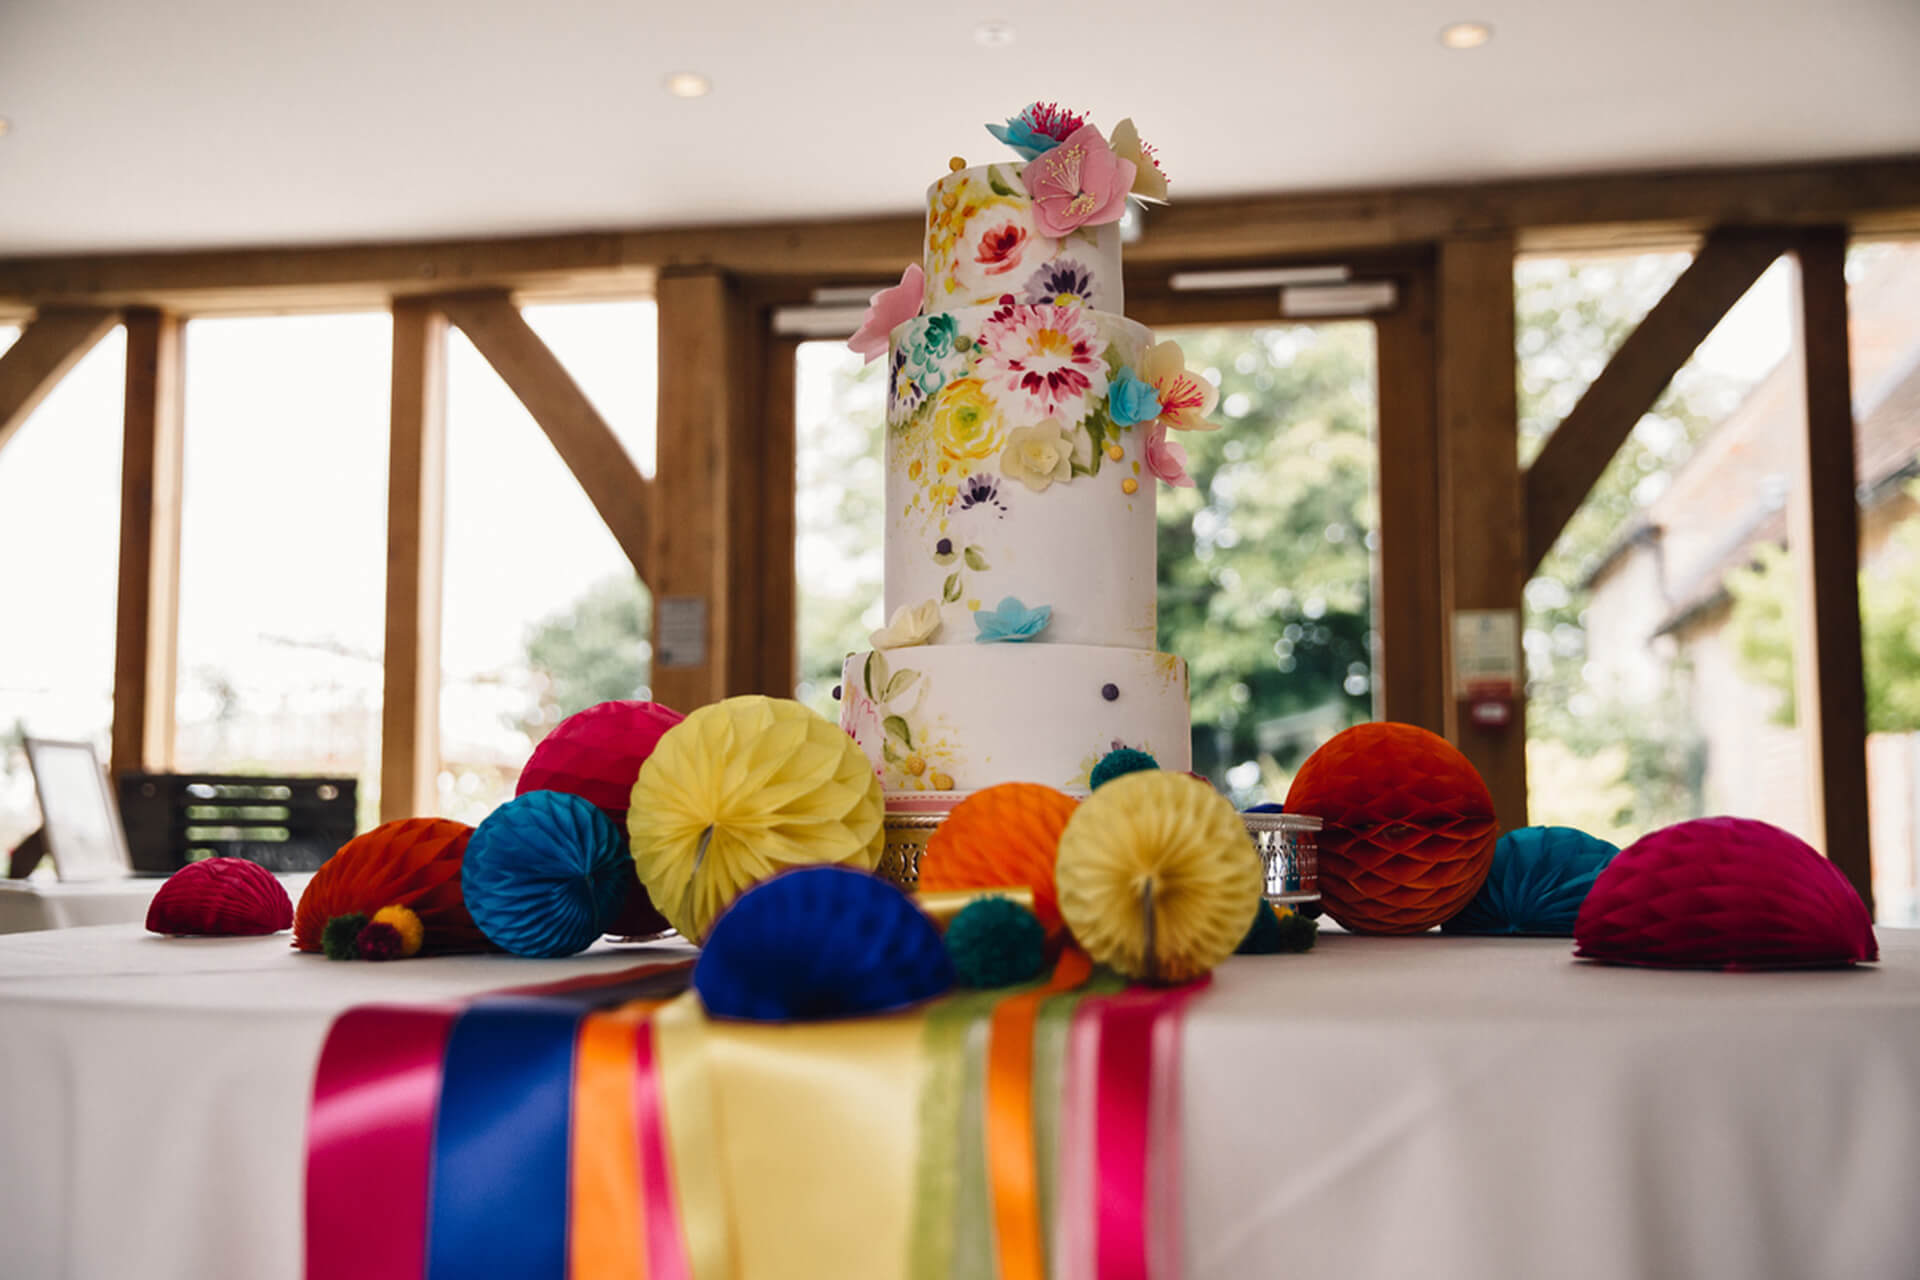 A white three tiered wedding cake is decorated with bright ribbons and wedding flowers